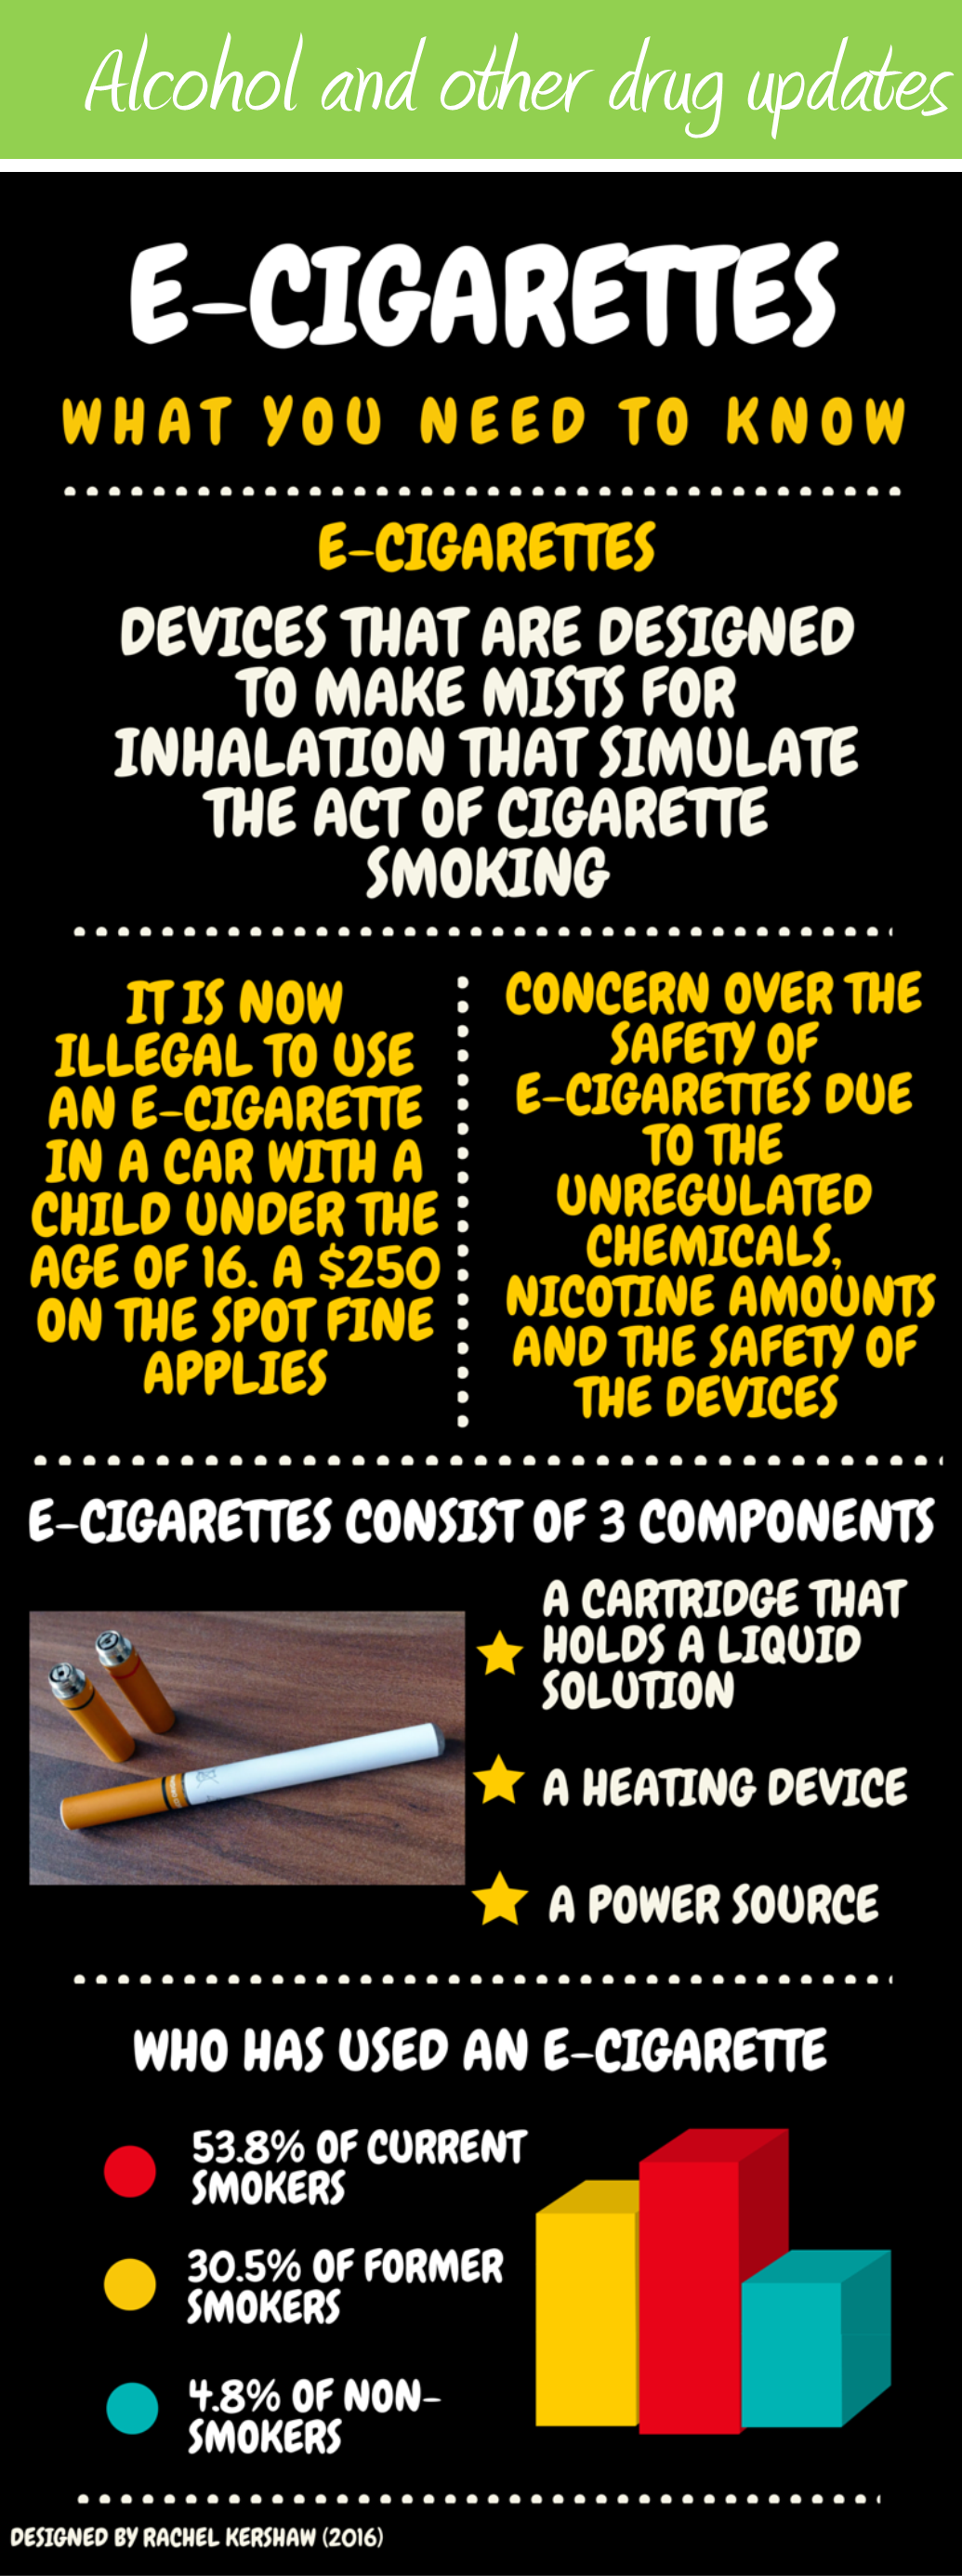 E-Cigarettes: What you need to know